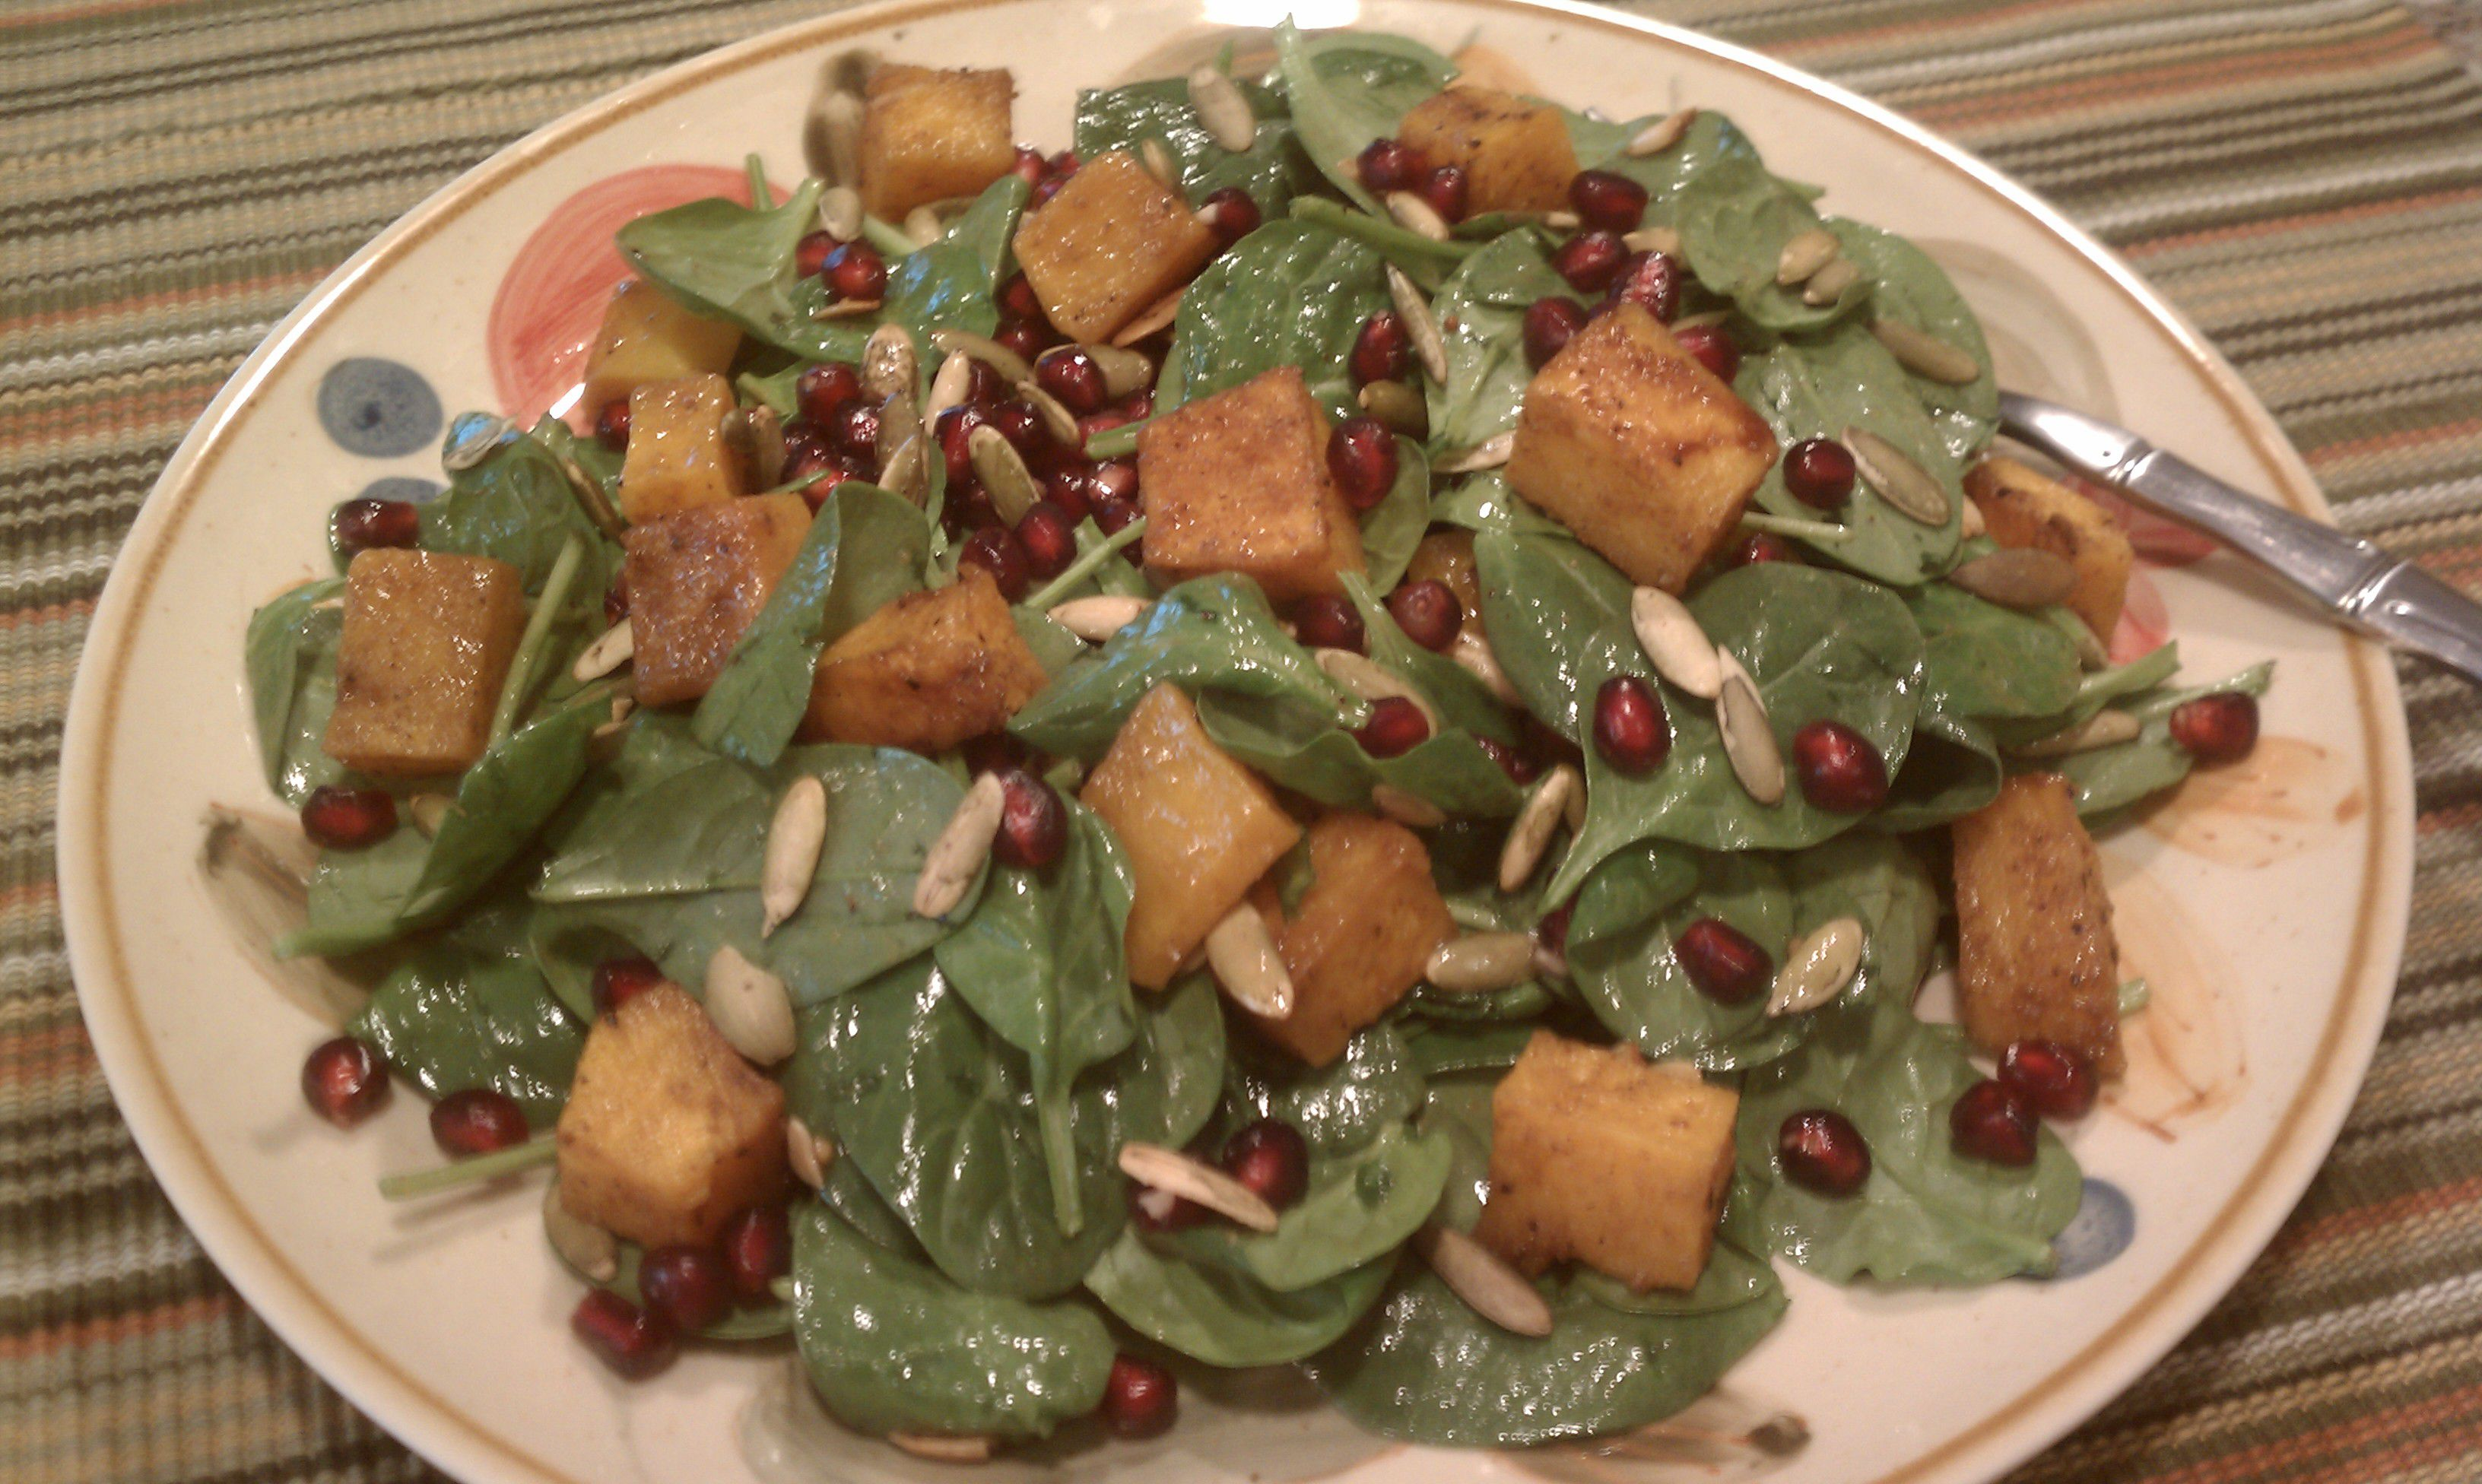 Spinach Salad with Pomegranate, Butternut Squash and Roasted Pepitas